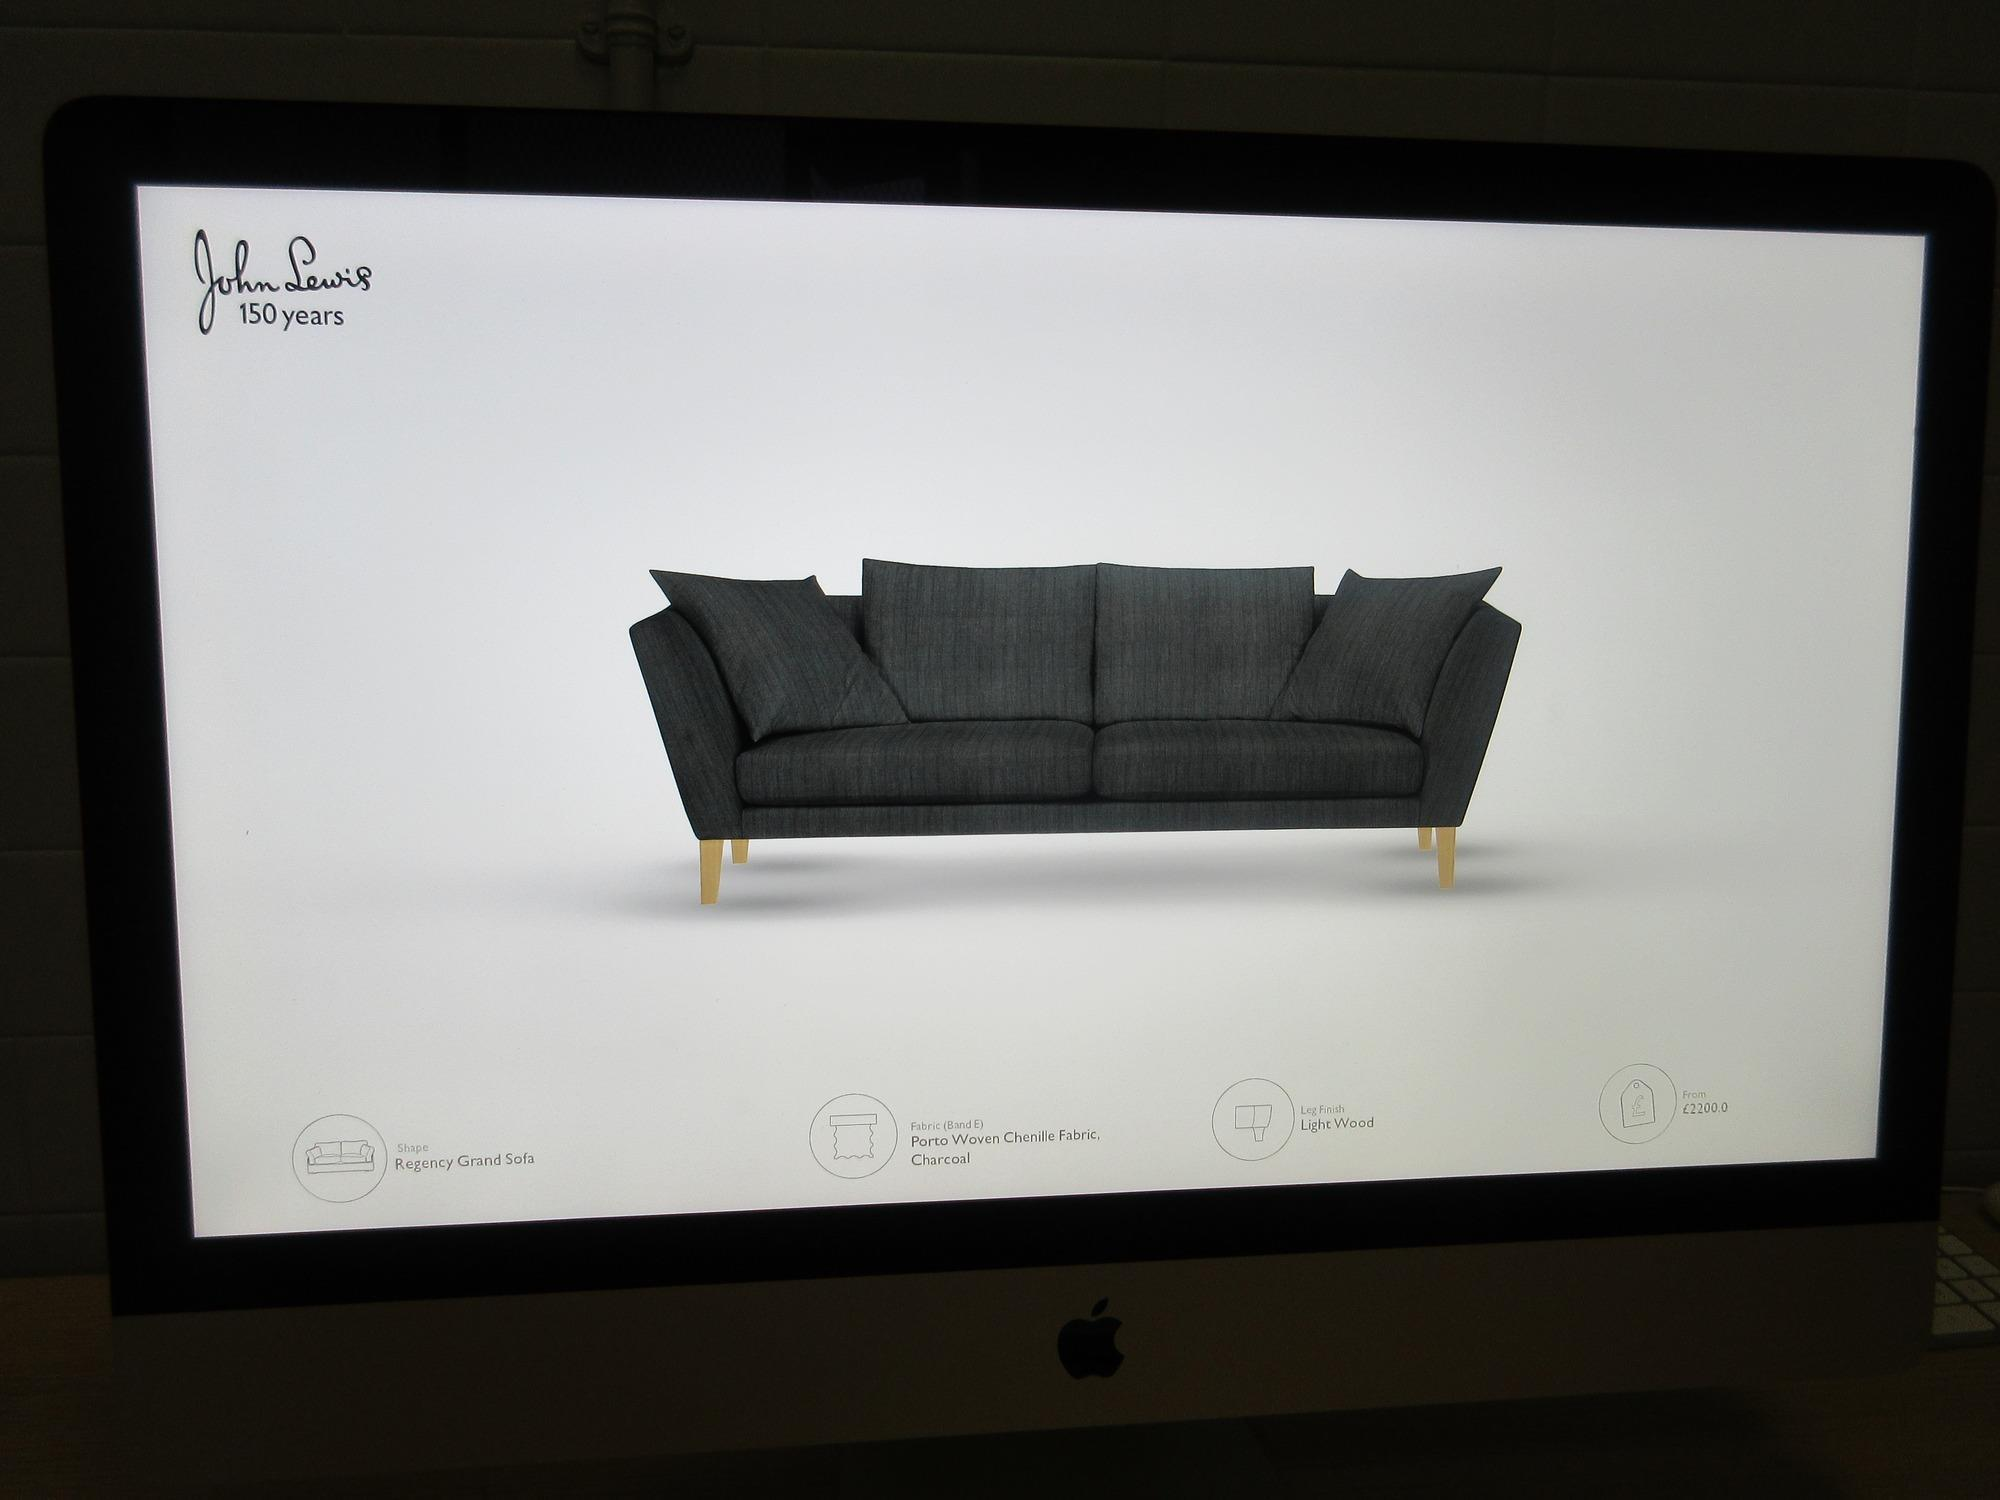 regency sofa john lewis slip covers target trials interactive studio using rfid and 3d printing news retail week